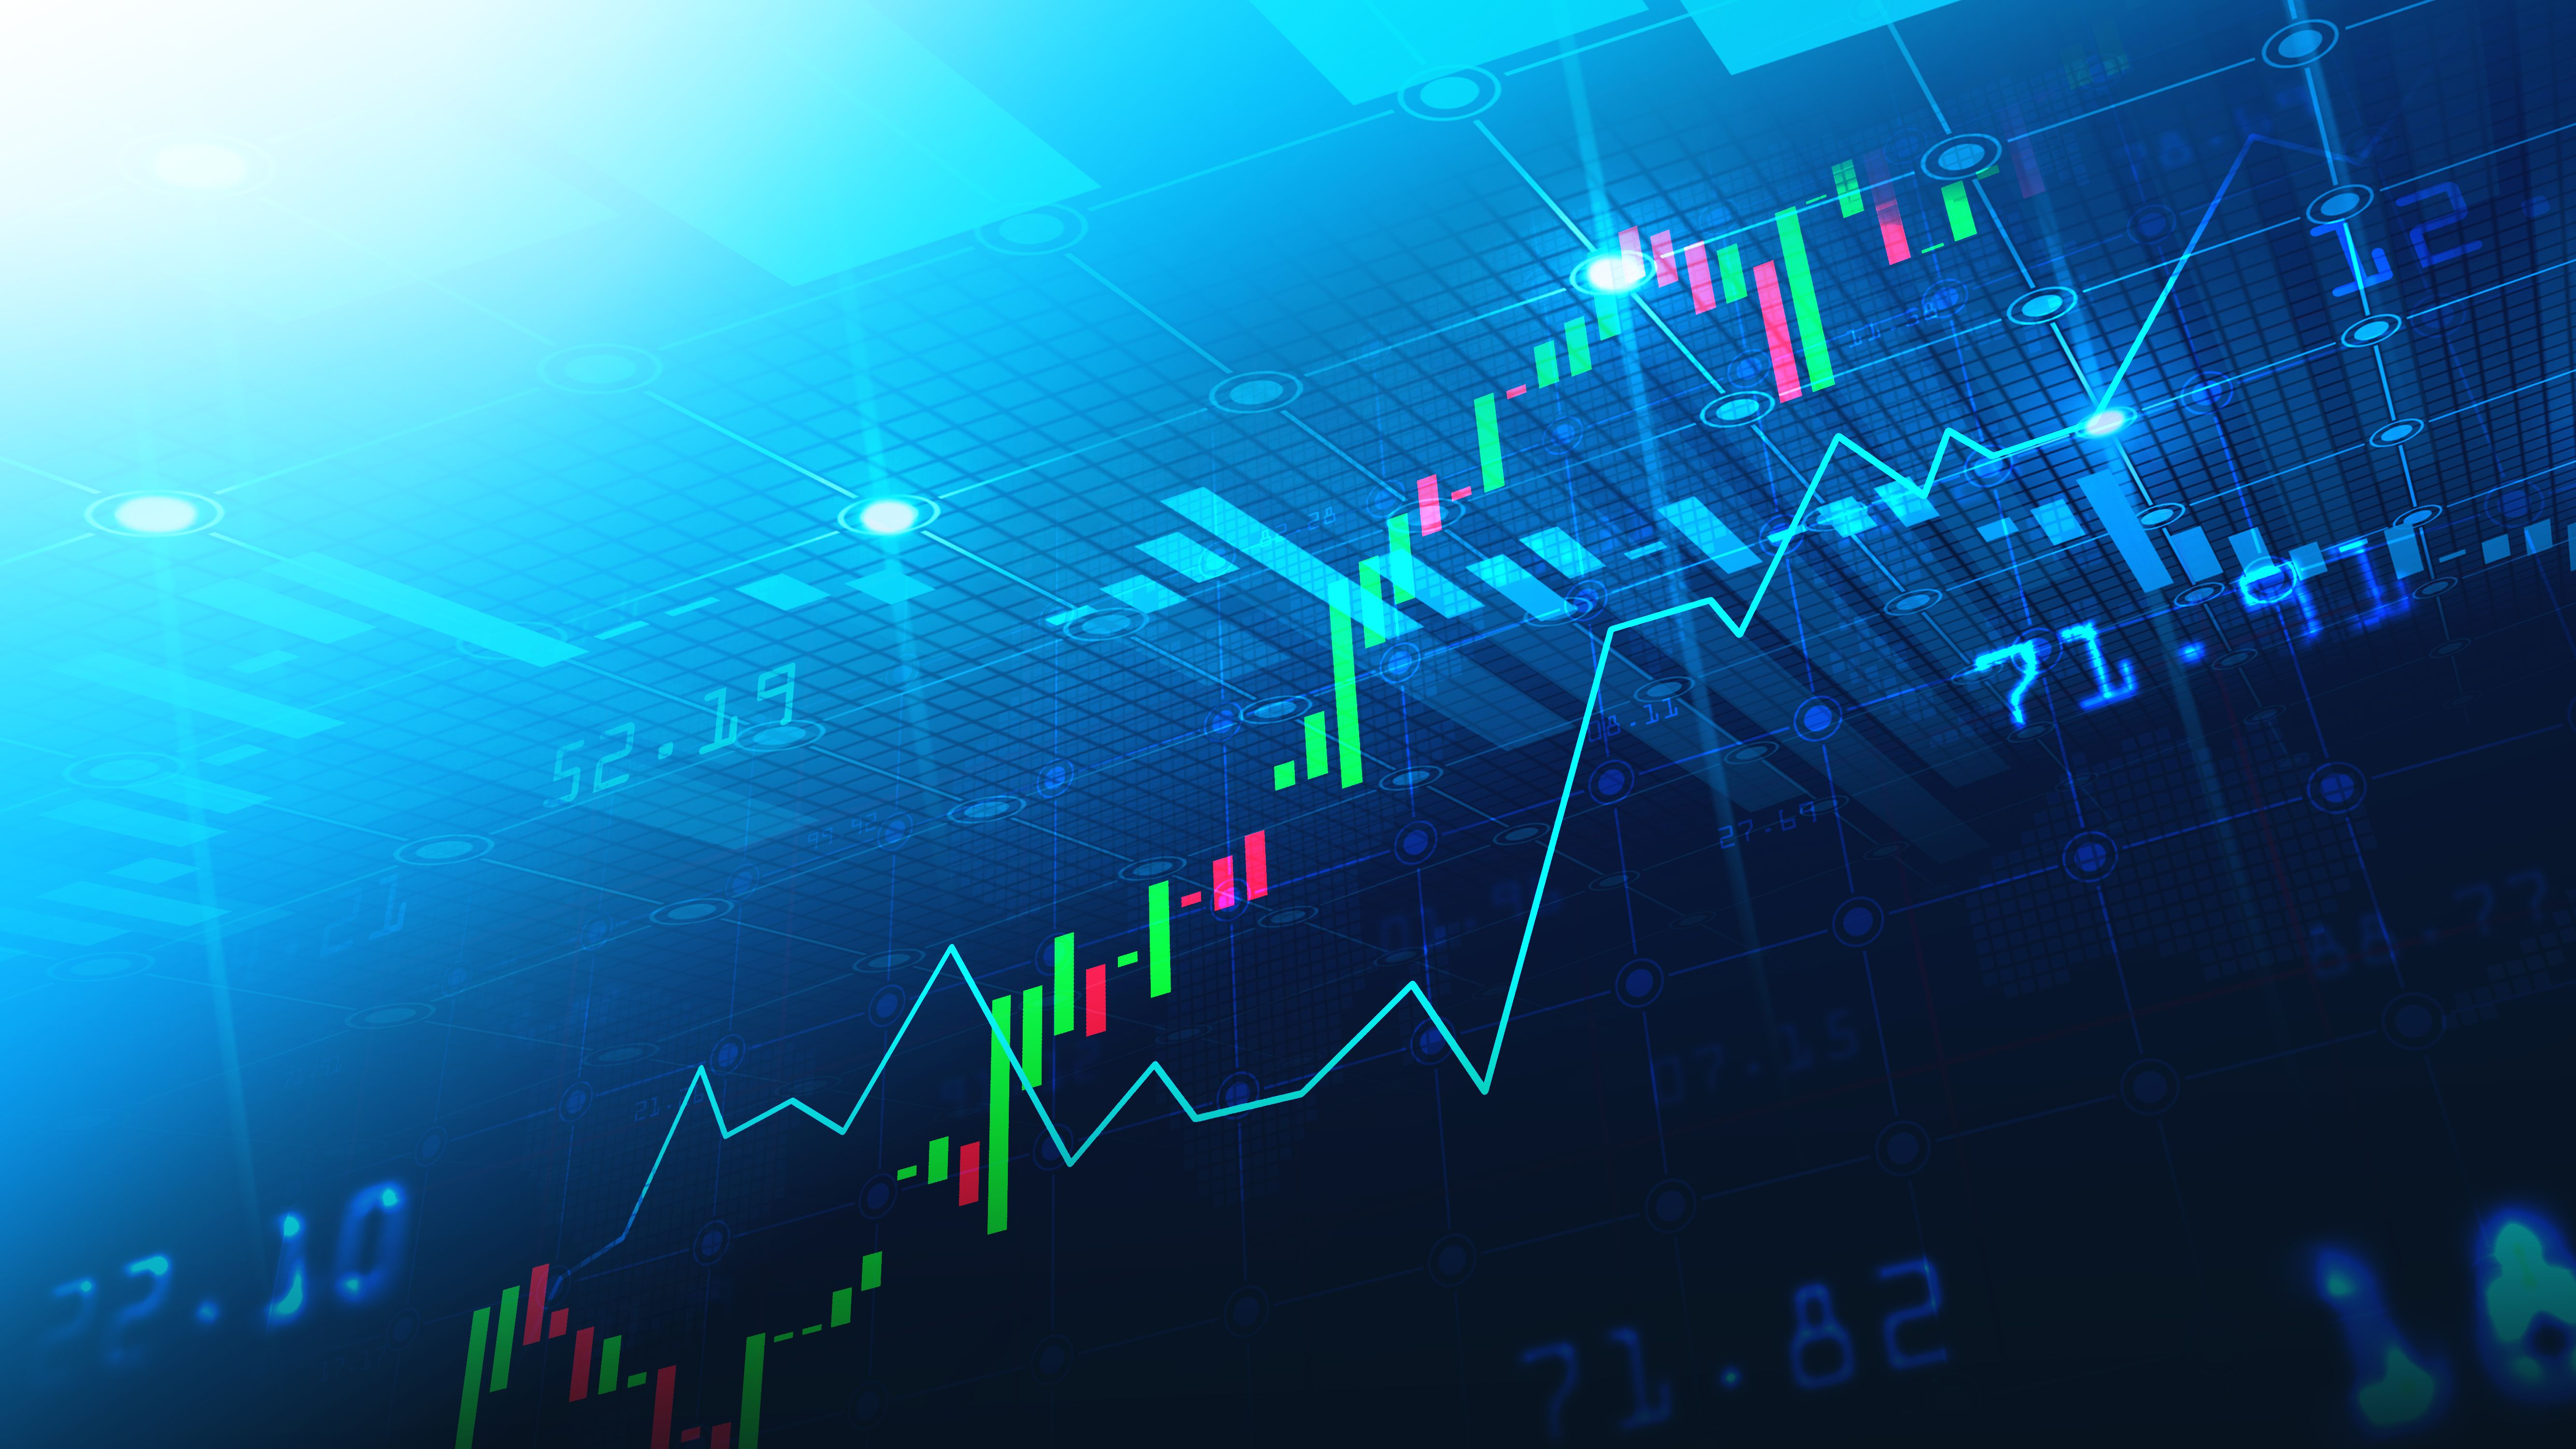 Stock Market Or Forex Trading Graph In Graphic Concept Stock Market Stock Data Forex Trading